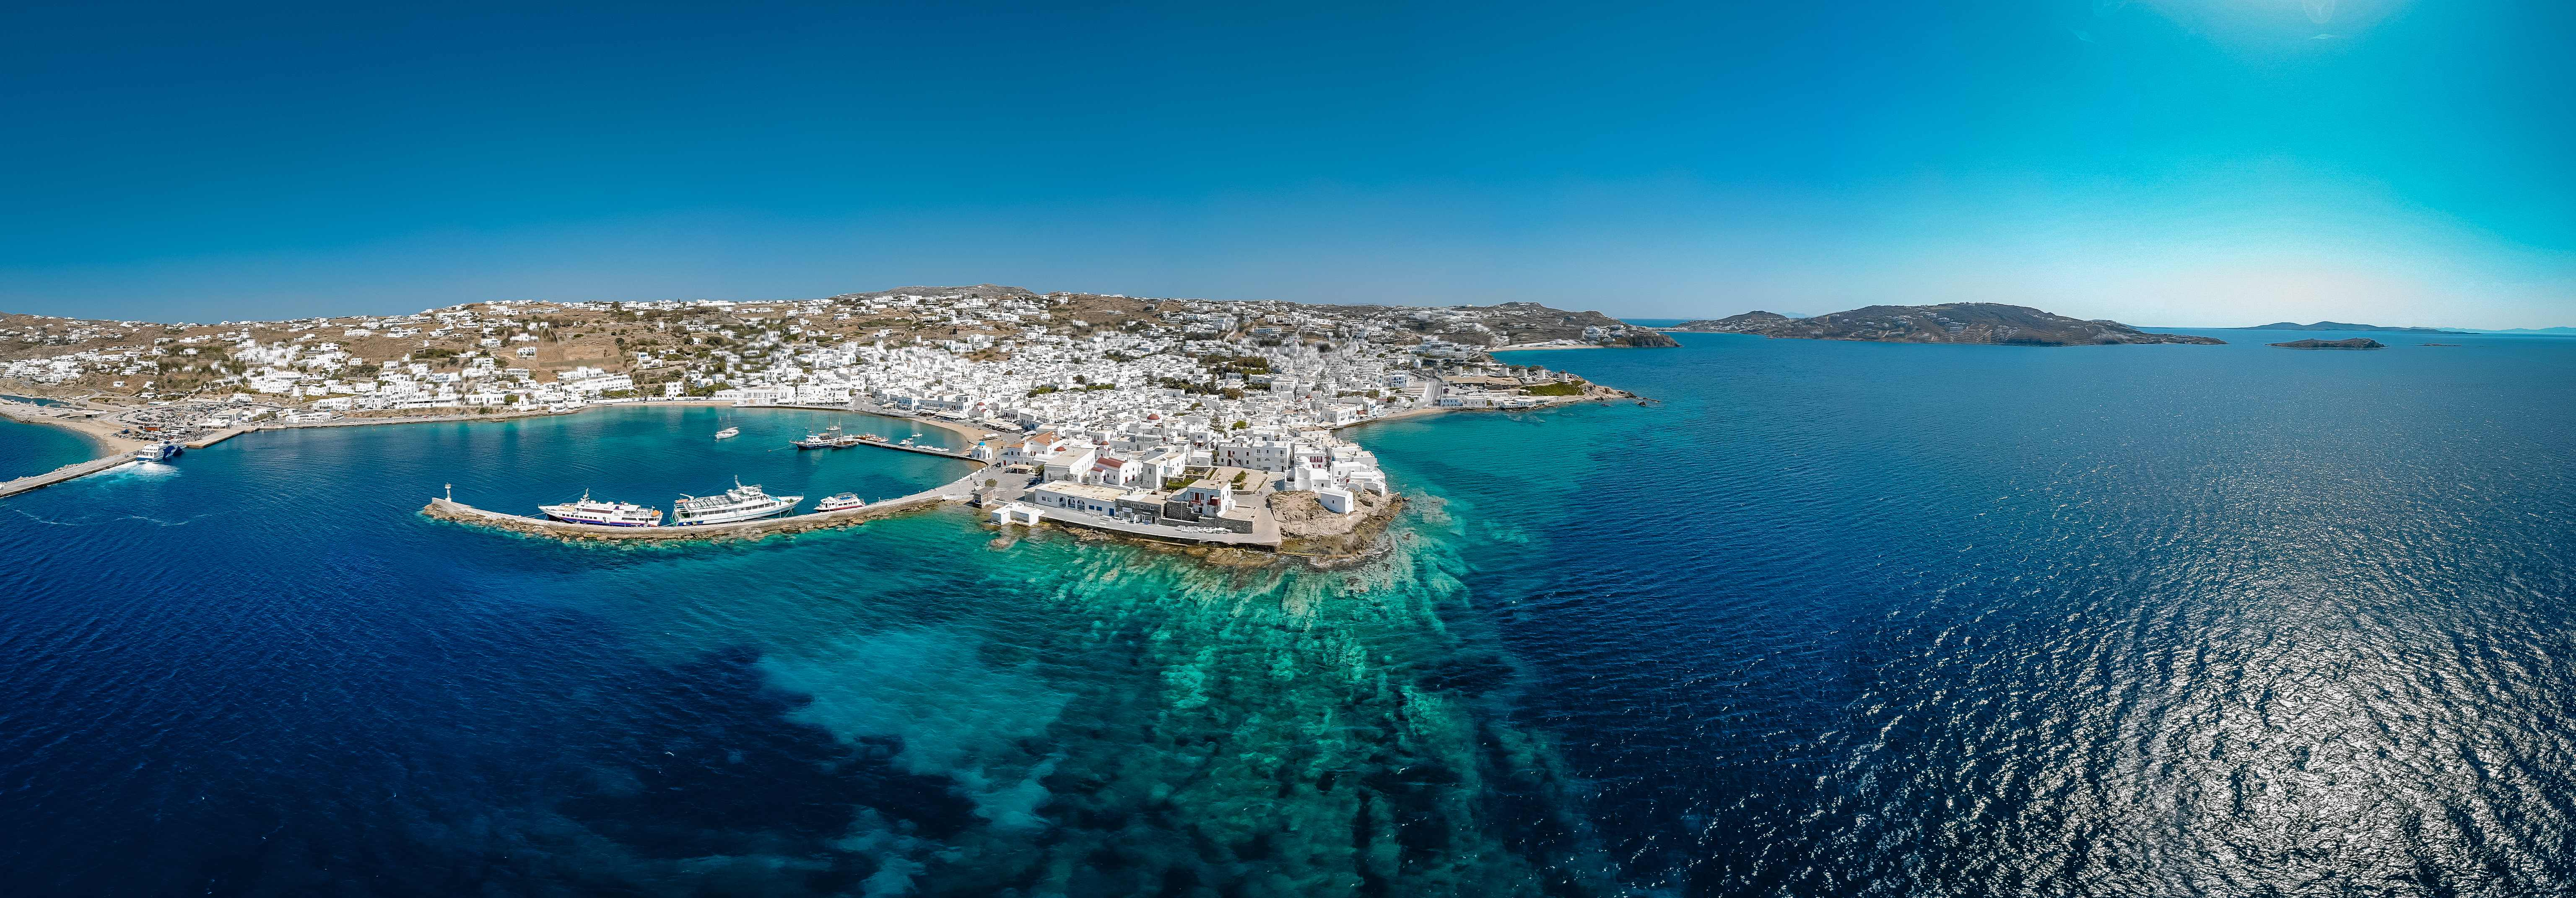 Mykonos, Greece, Drone, Panoramic, Sea